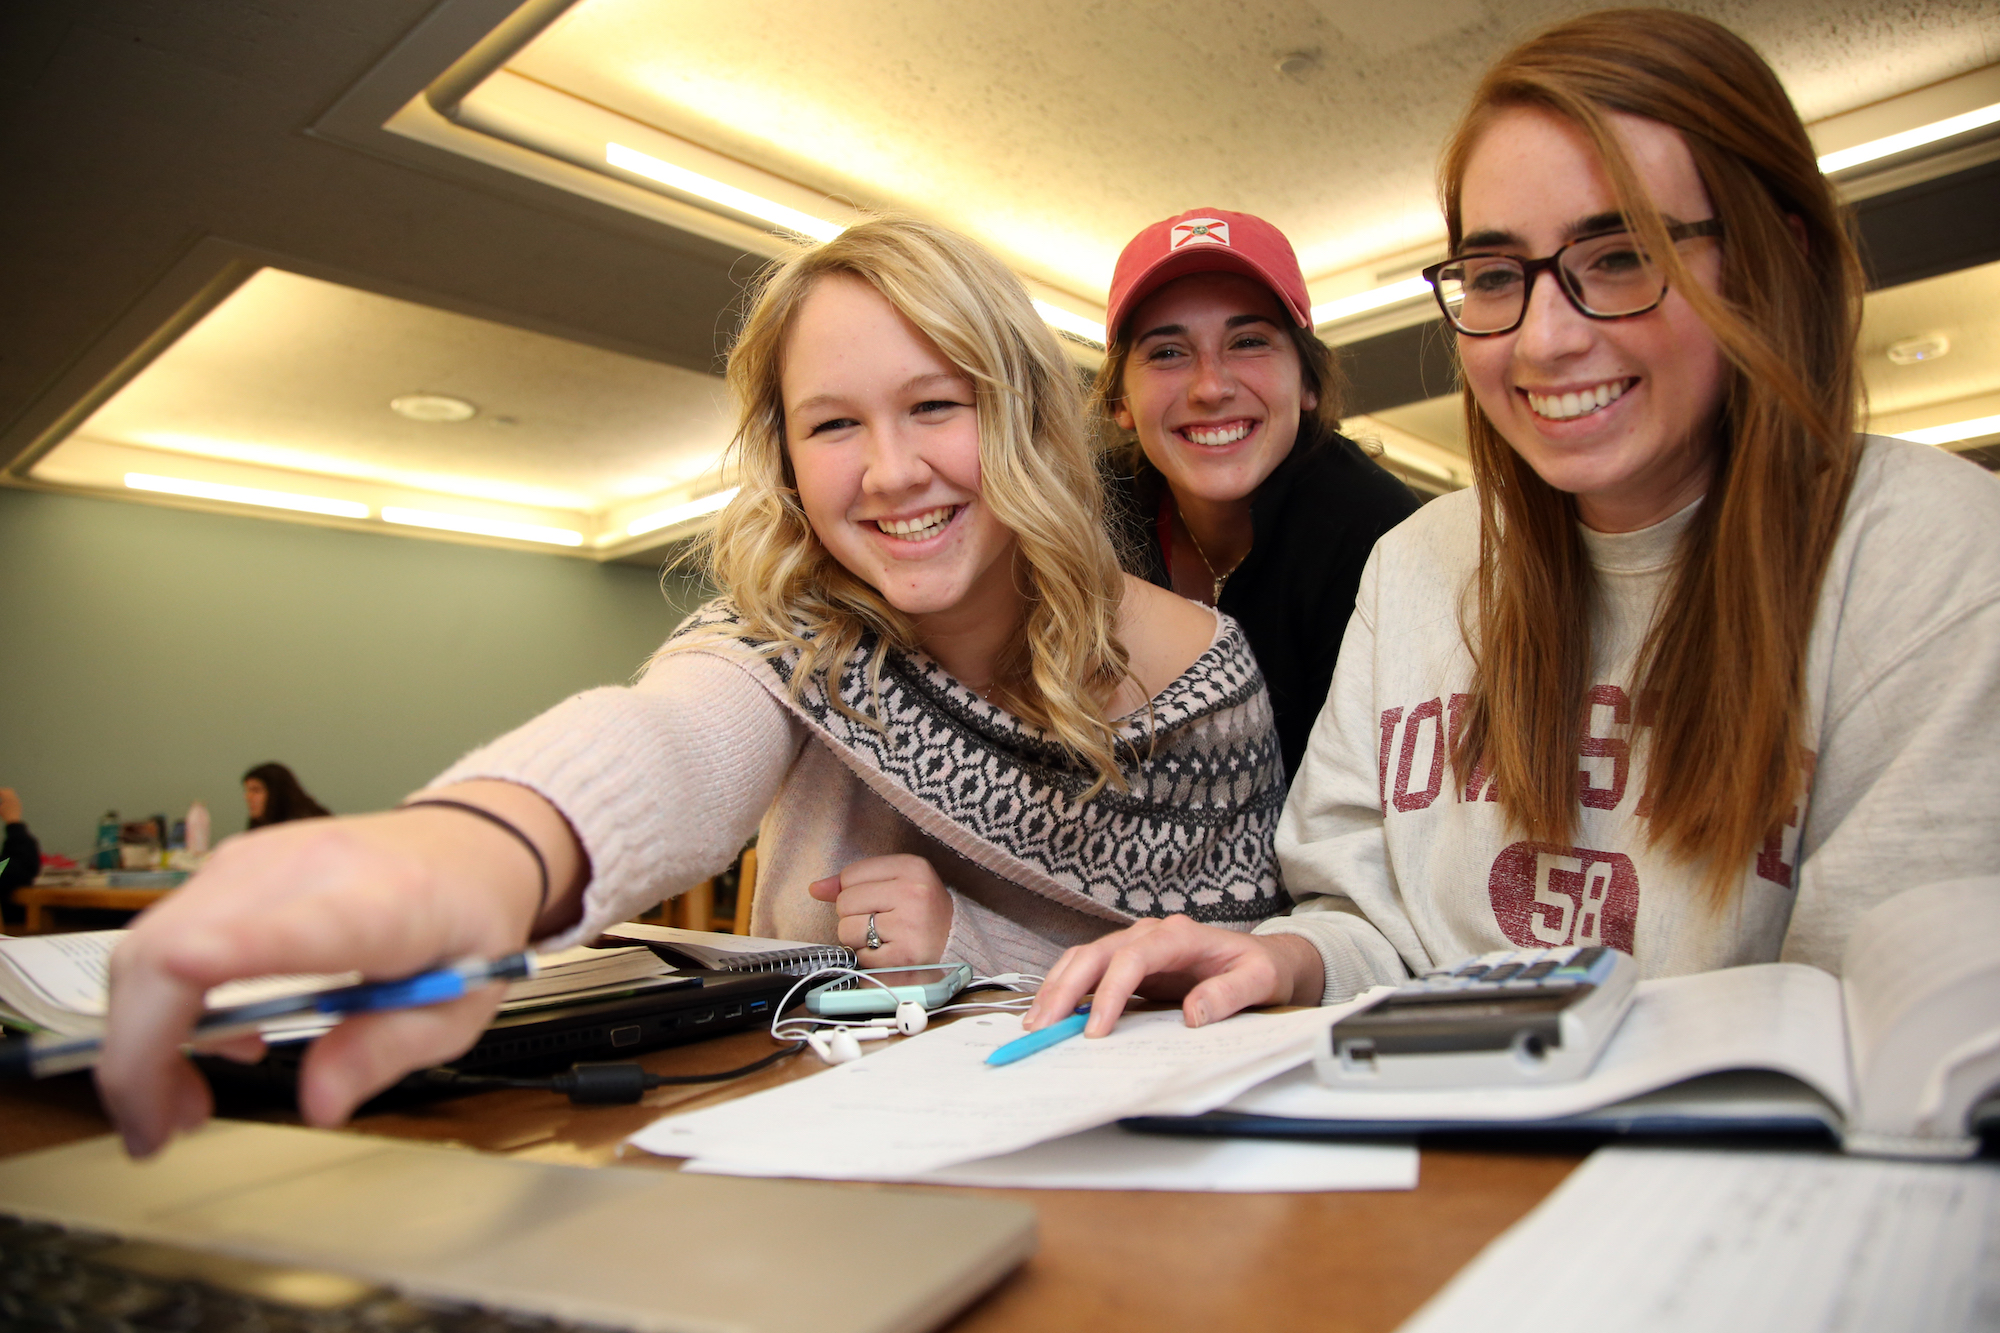 Anna and two other students point toward a computer while looking over textbooks and notes.